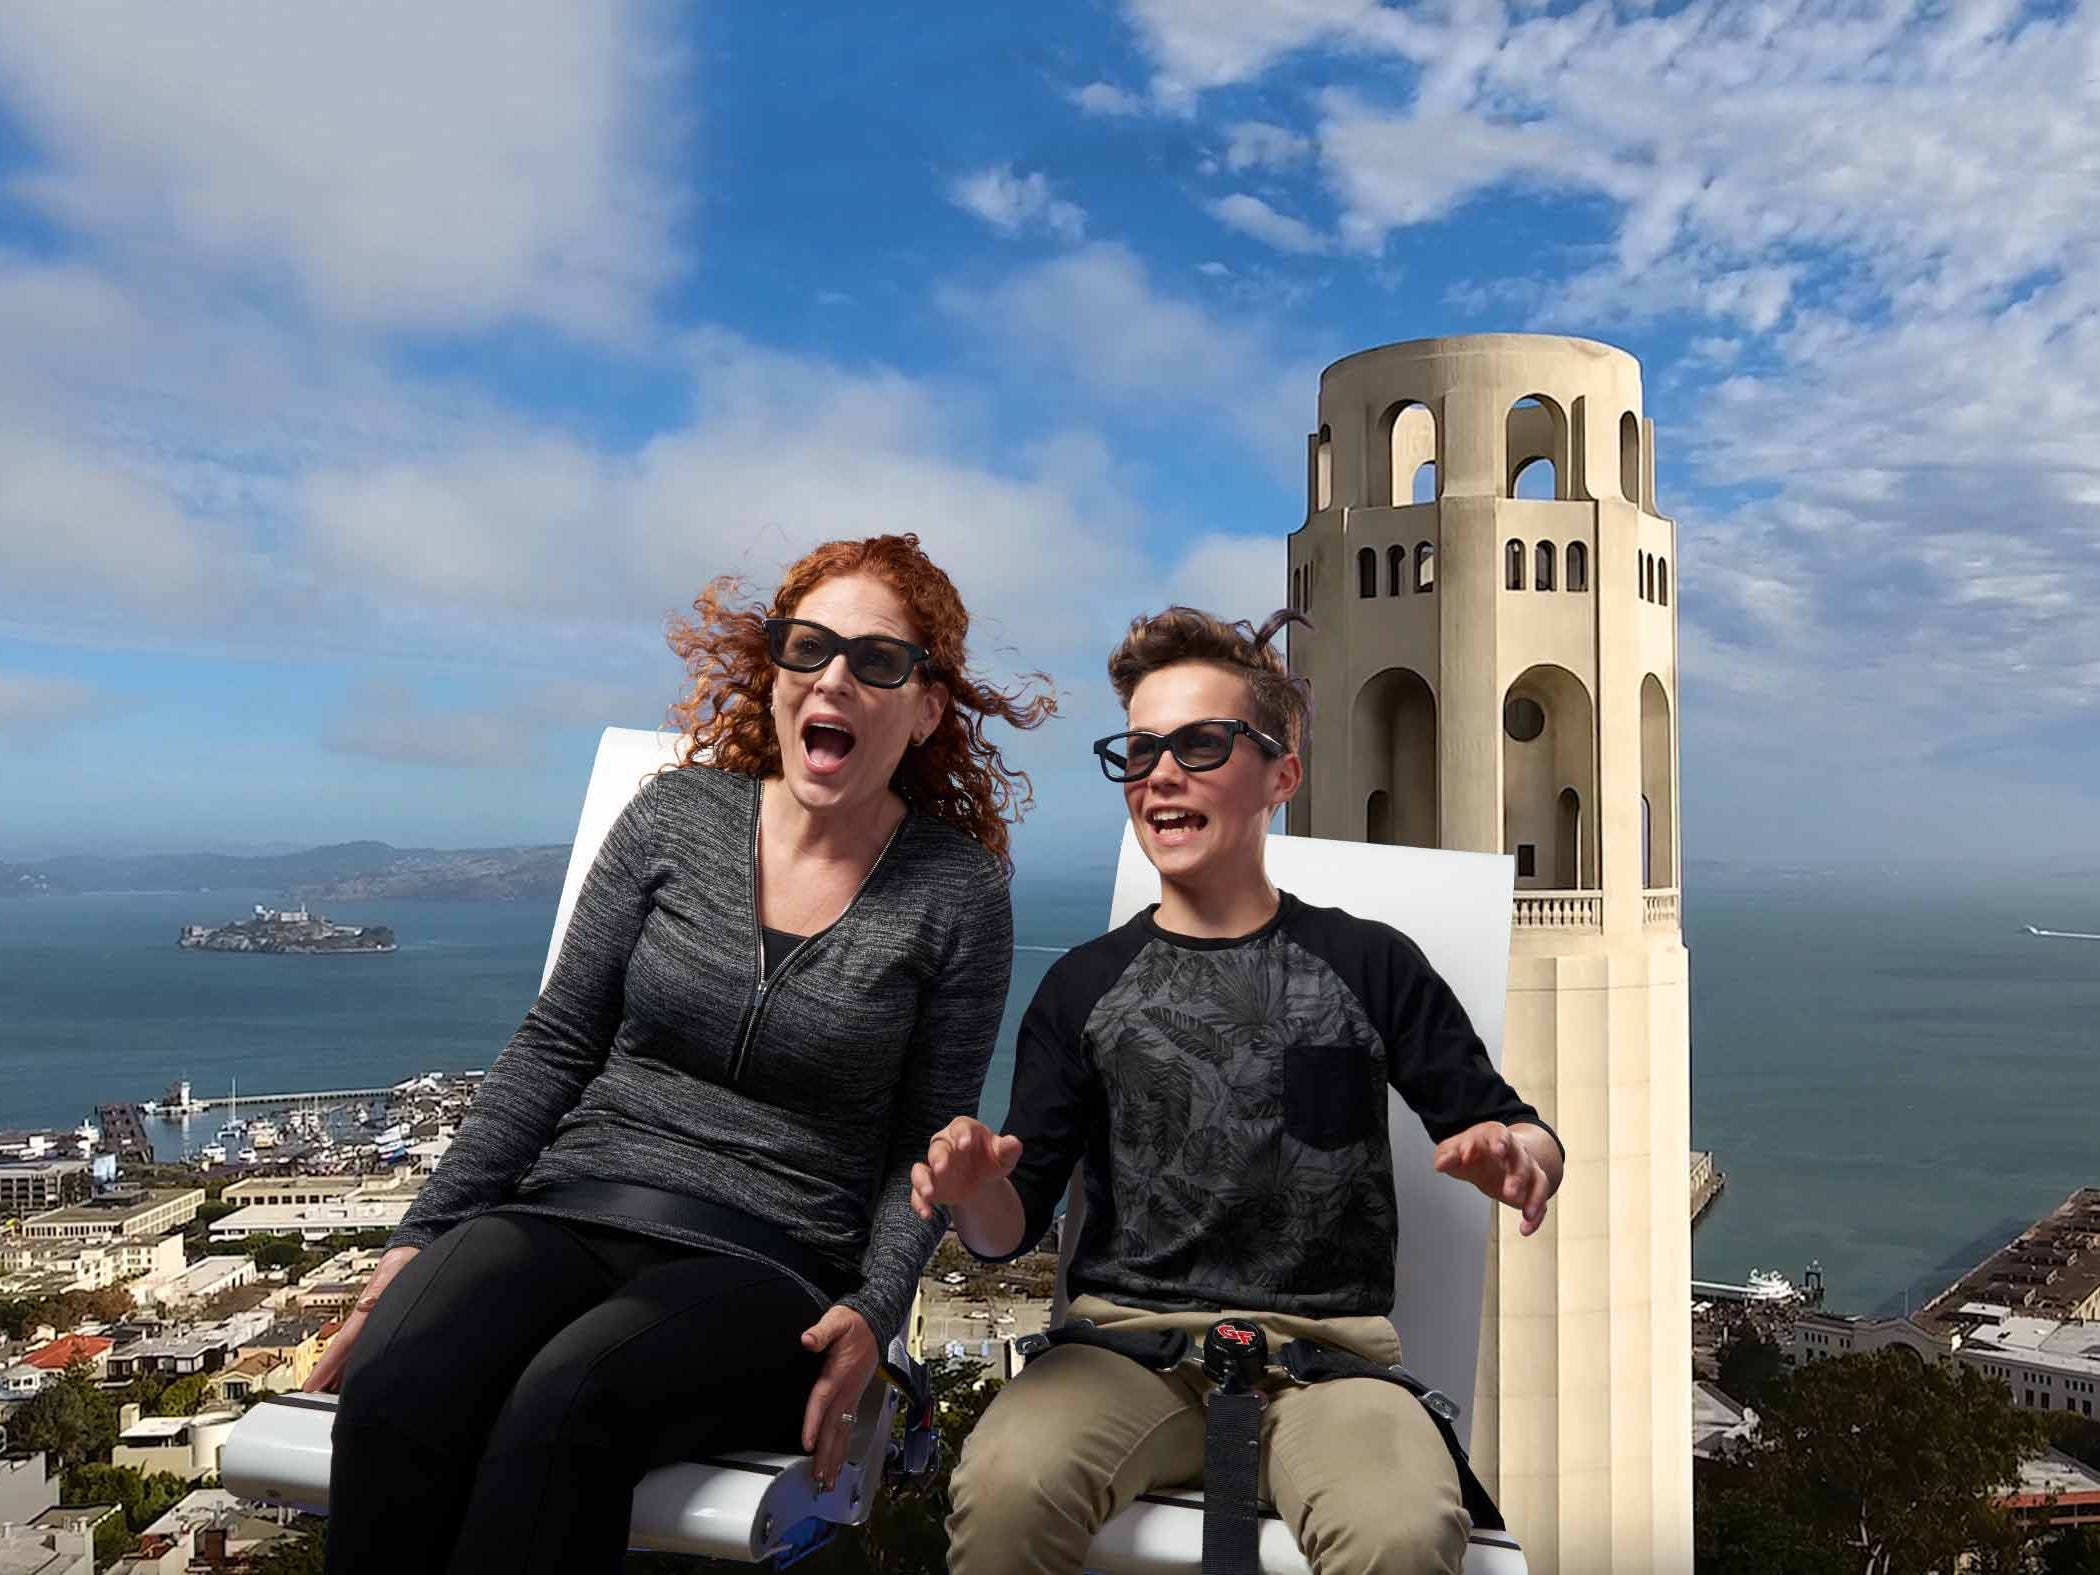 The success of Disney's Soarin' has inspired The Flyer — San Francisco, which takes visitors on a tour of the Golden Gate Bridge, Alcatraz and more.